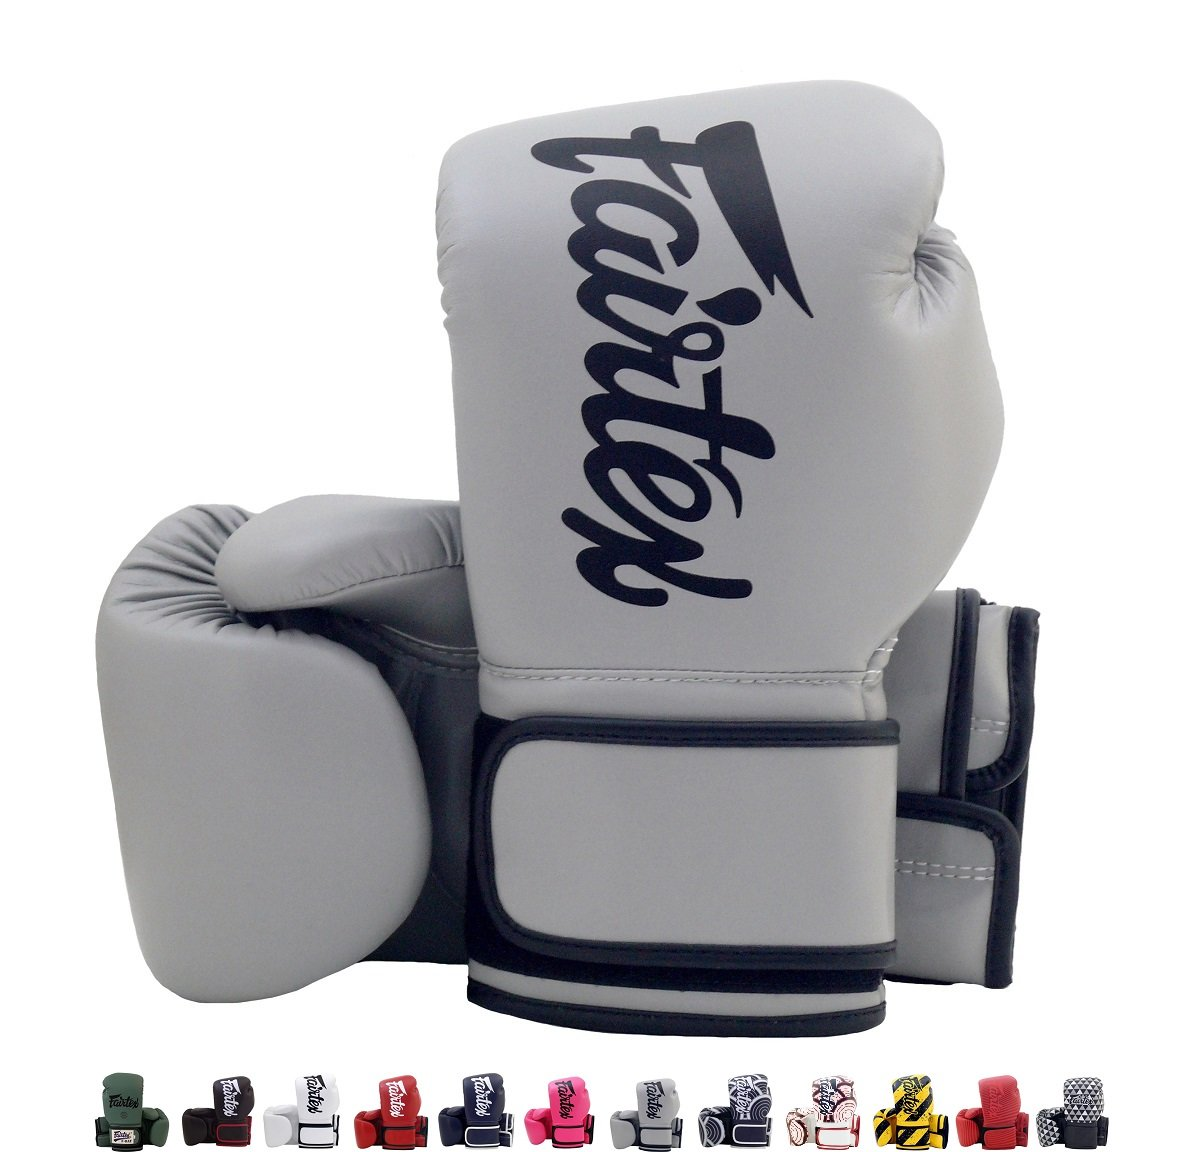 Fairtex BGV14 Microfibre Boxing Gloves Muay Thai Boxing, MMA, Kickboxing,Training Boxing Equipment, Gear for Martial Art (Gray, 12 oz)